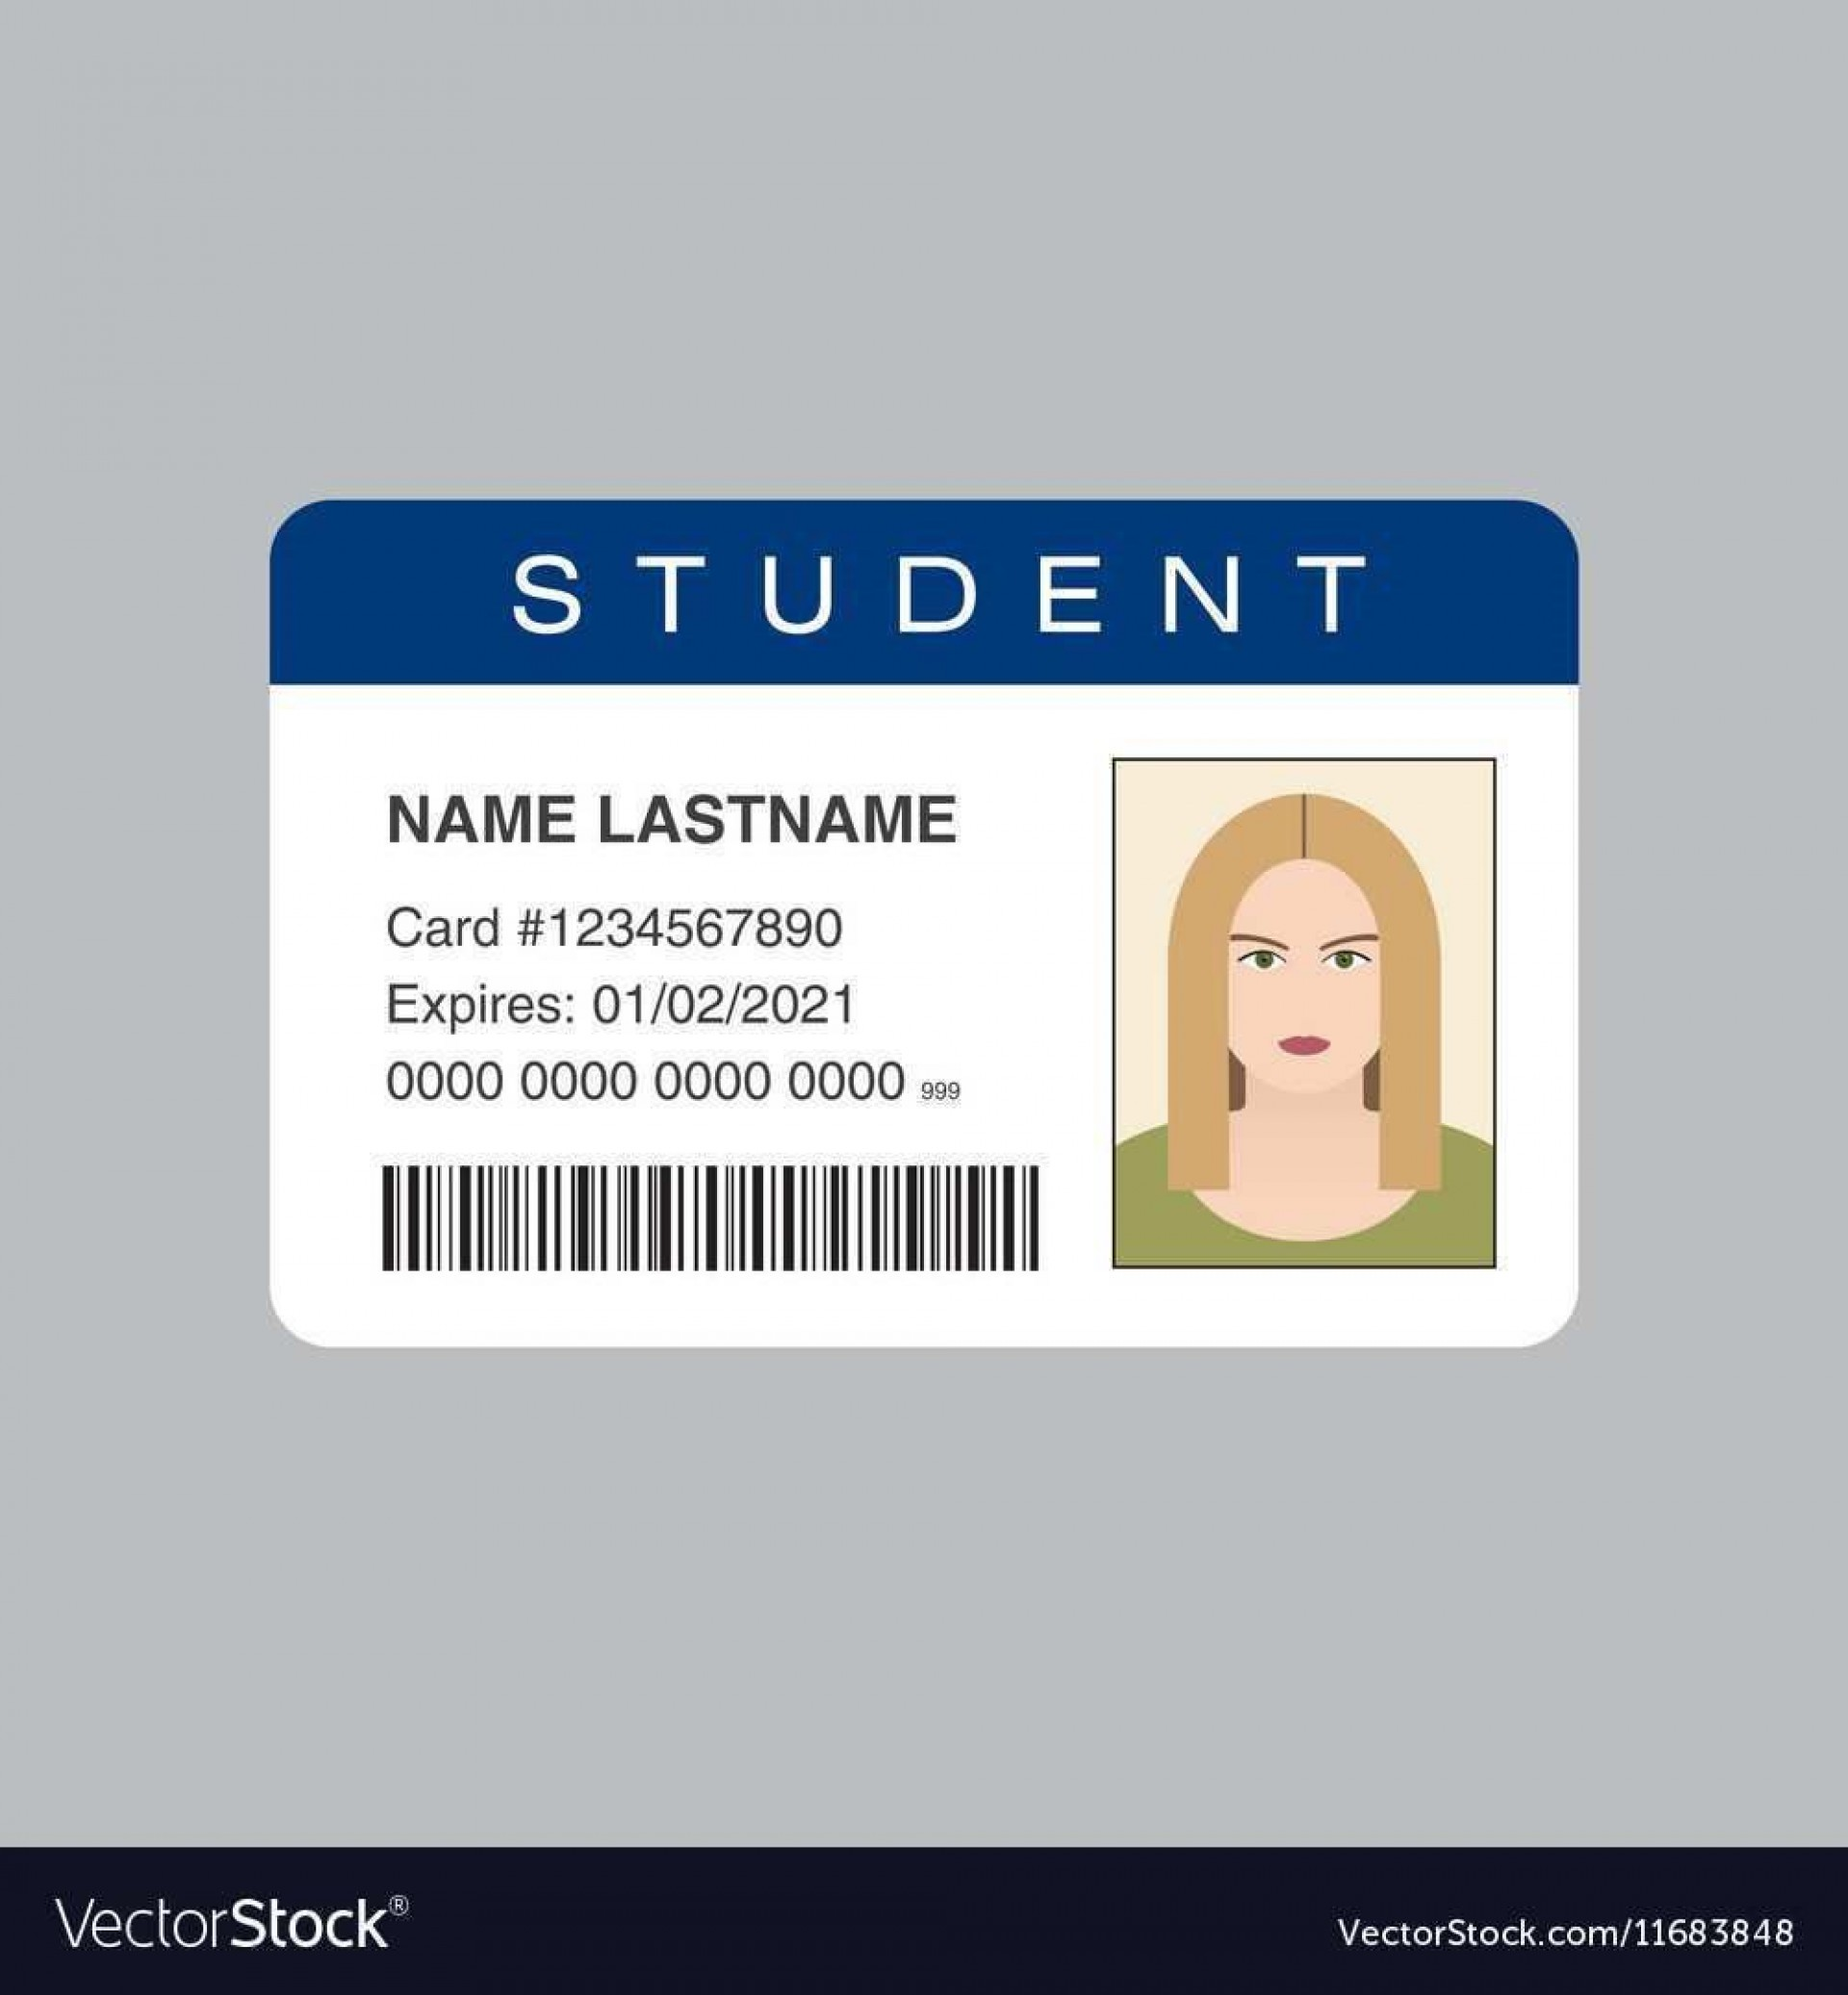 002 Fantastic Student Id Card Template High Resolution  Design Free Download Word Employee Microsoft Vertical Identity Psd1920